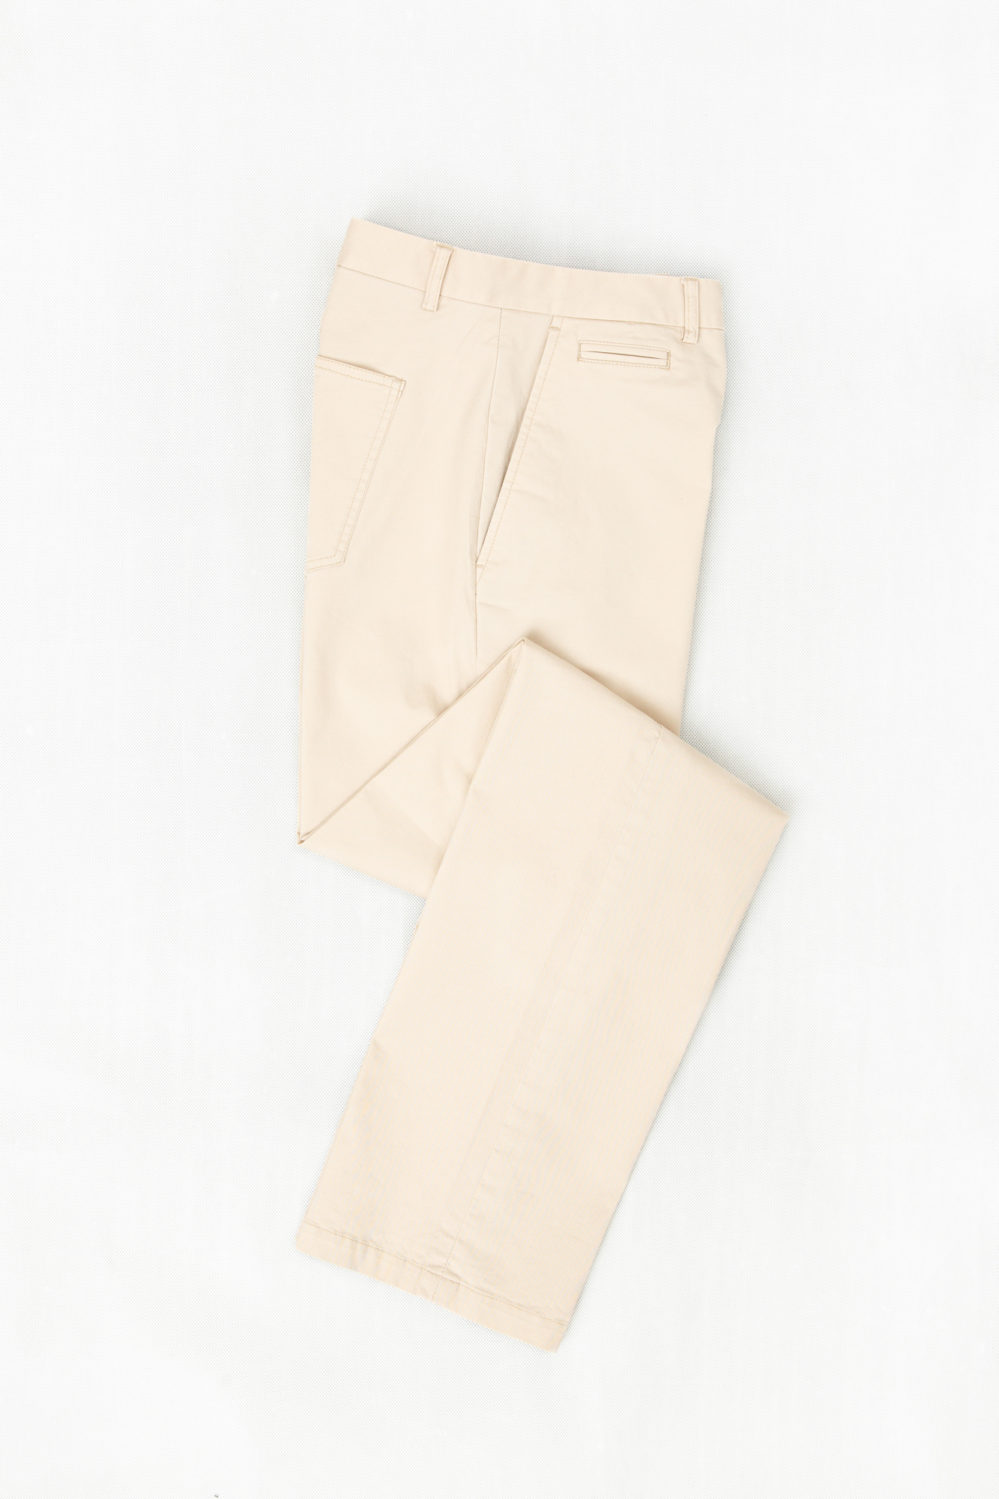 Flat lay of cream colored chinos, which can be custom tailored to your fit and frame